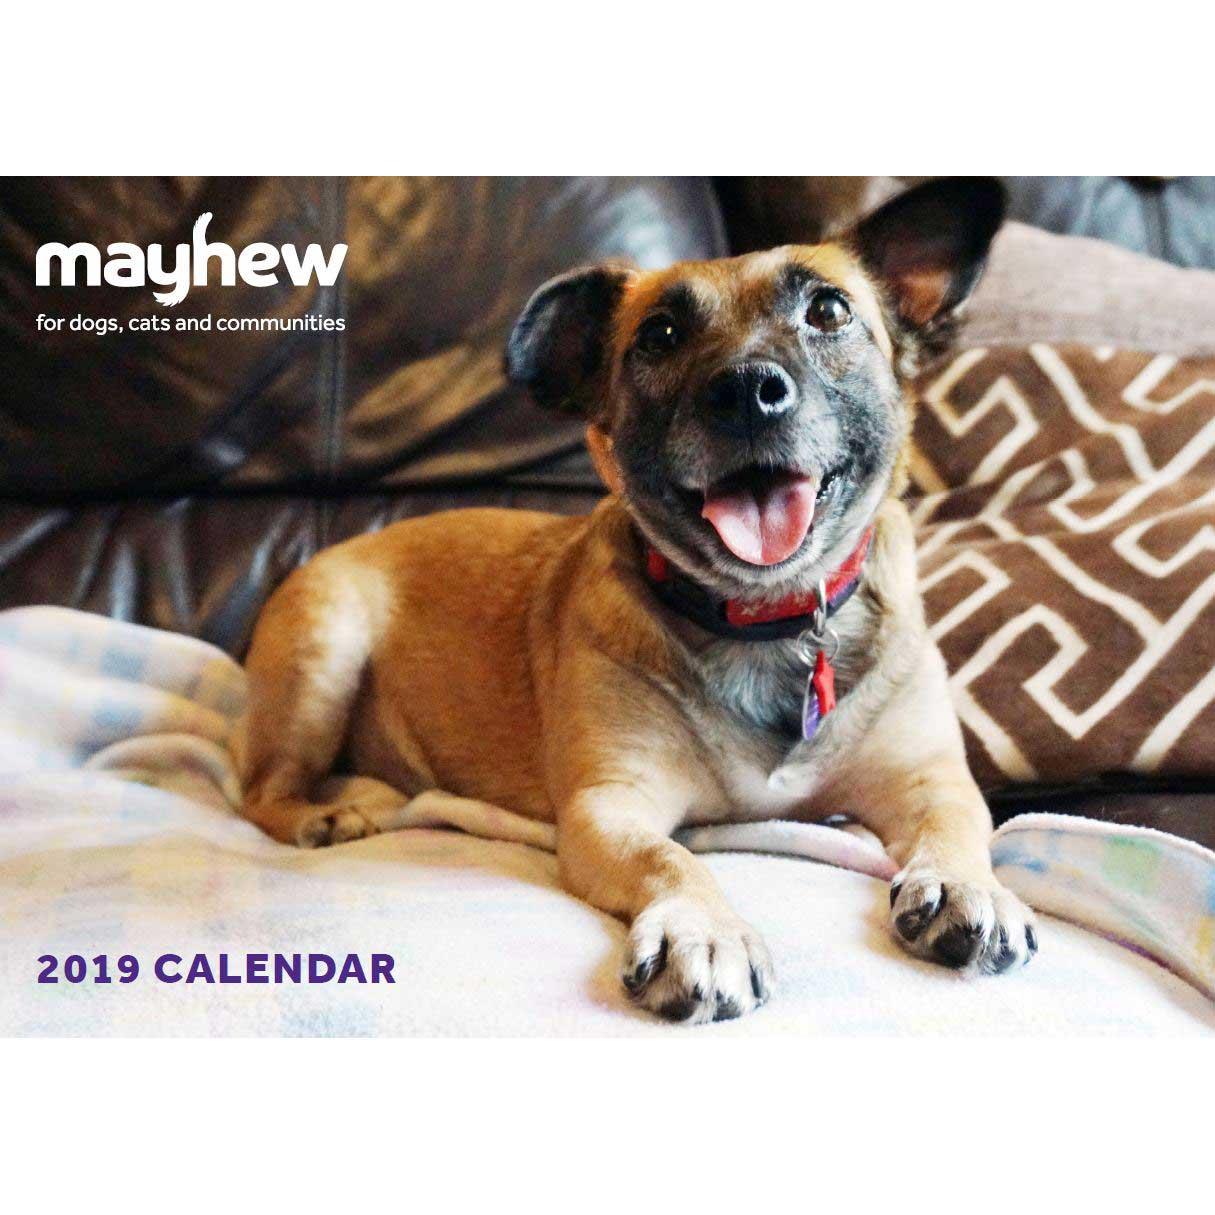 Mayhew 2019 Dog Calendar Mayhew Shop